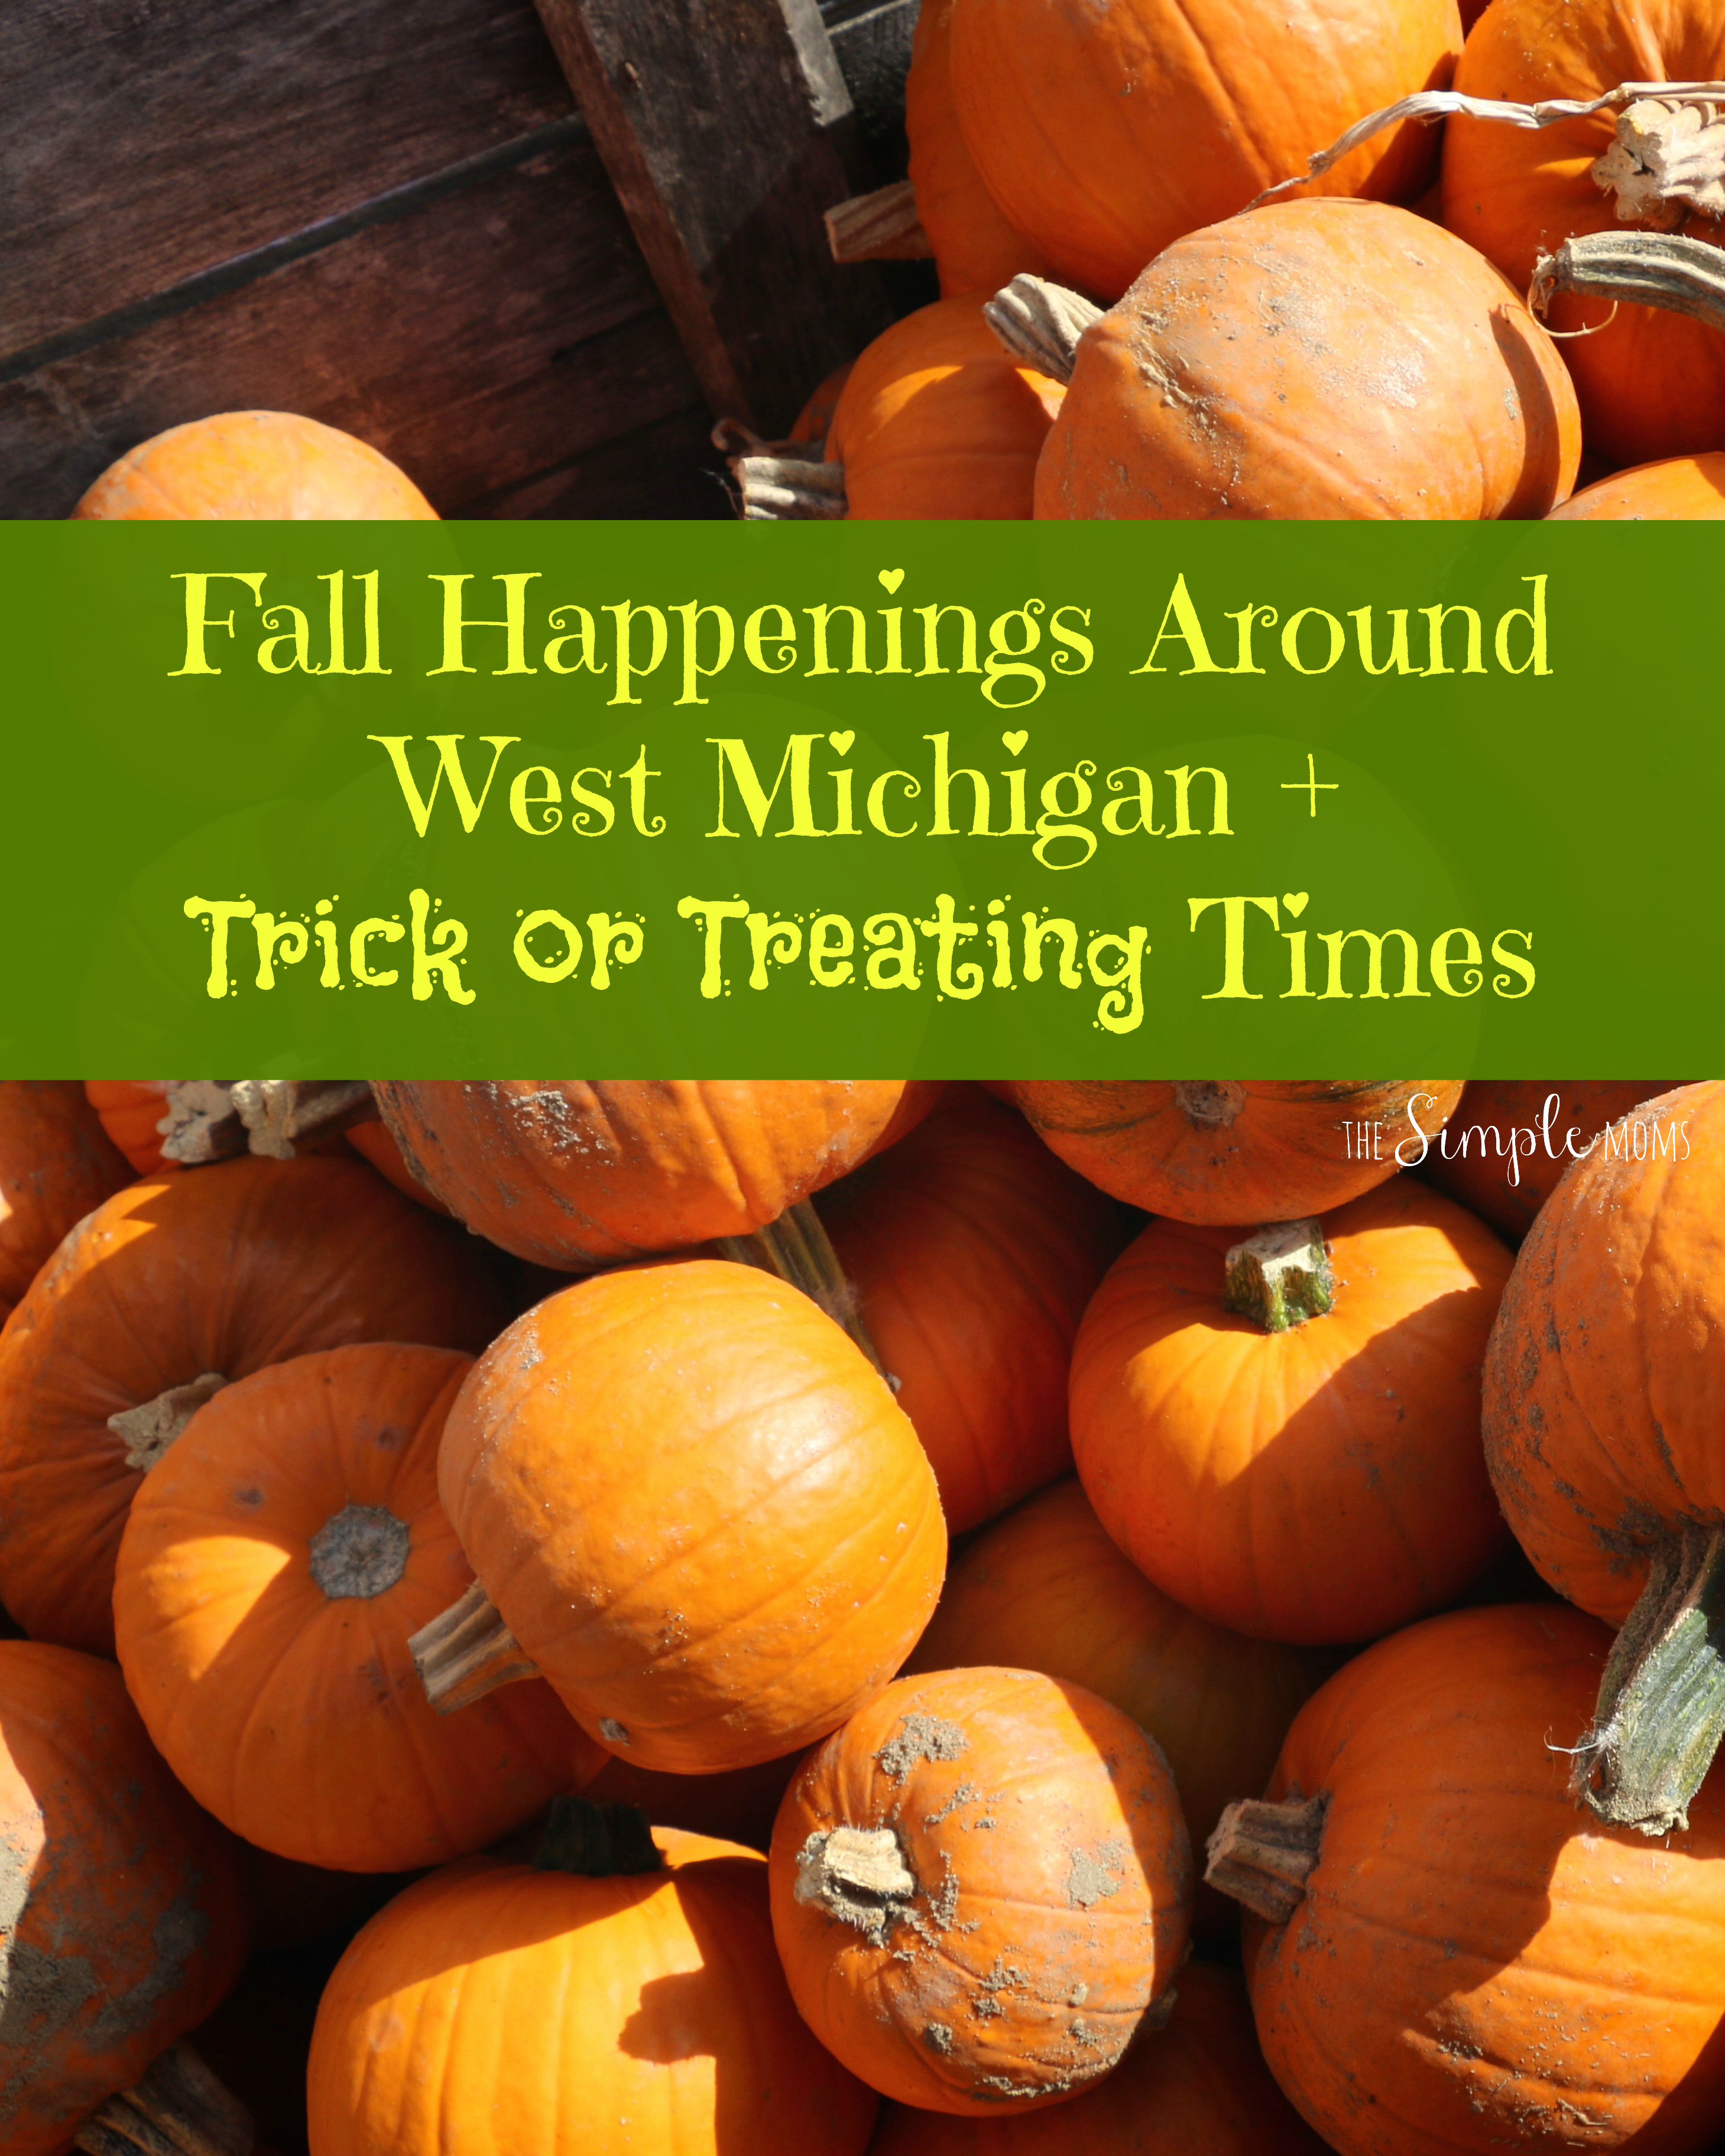 fall-happenings-around-west-michigan-trick-or-treating-times